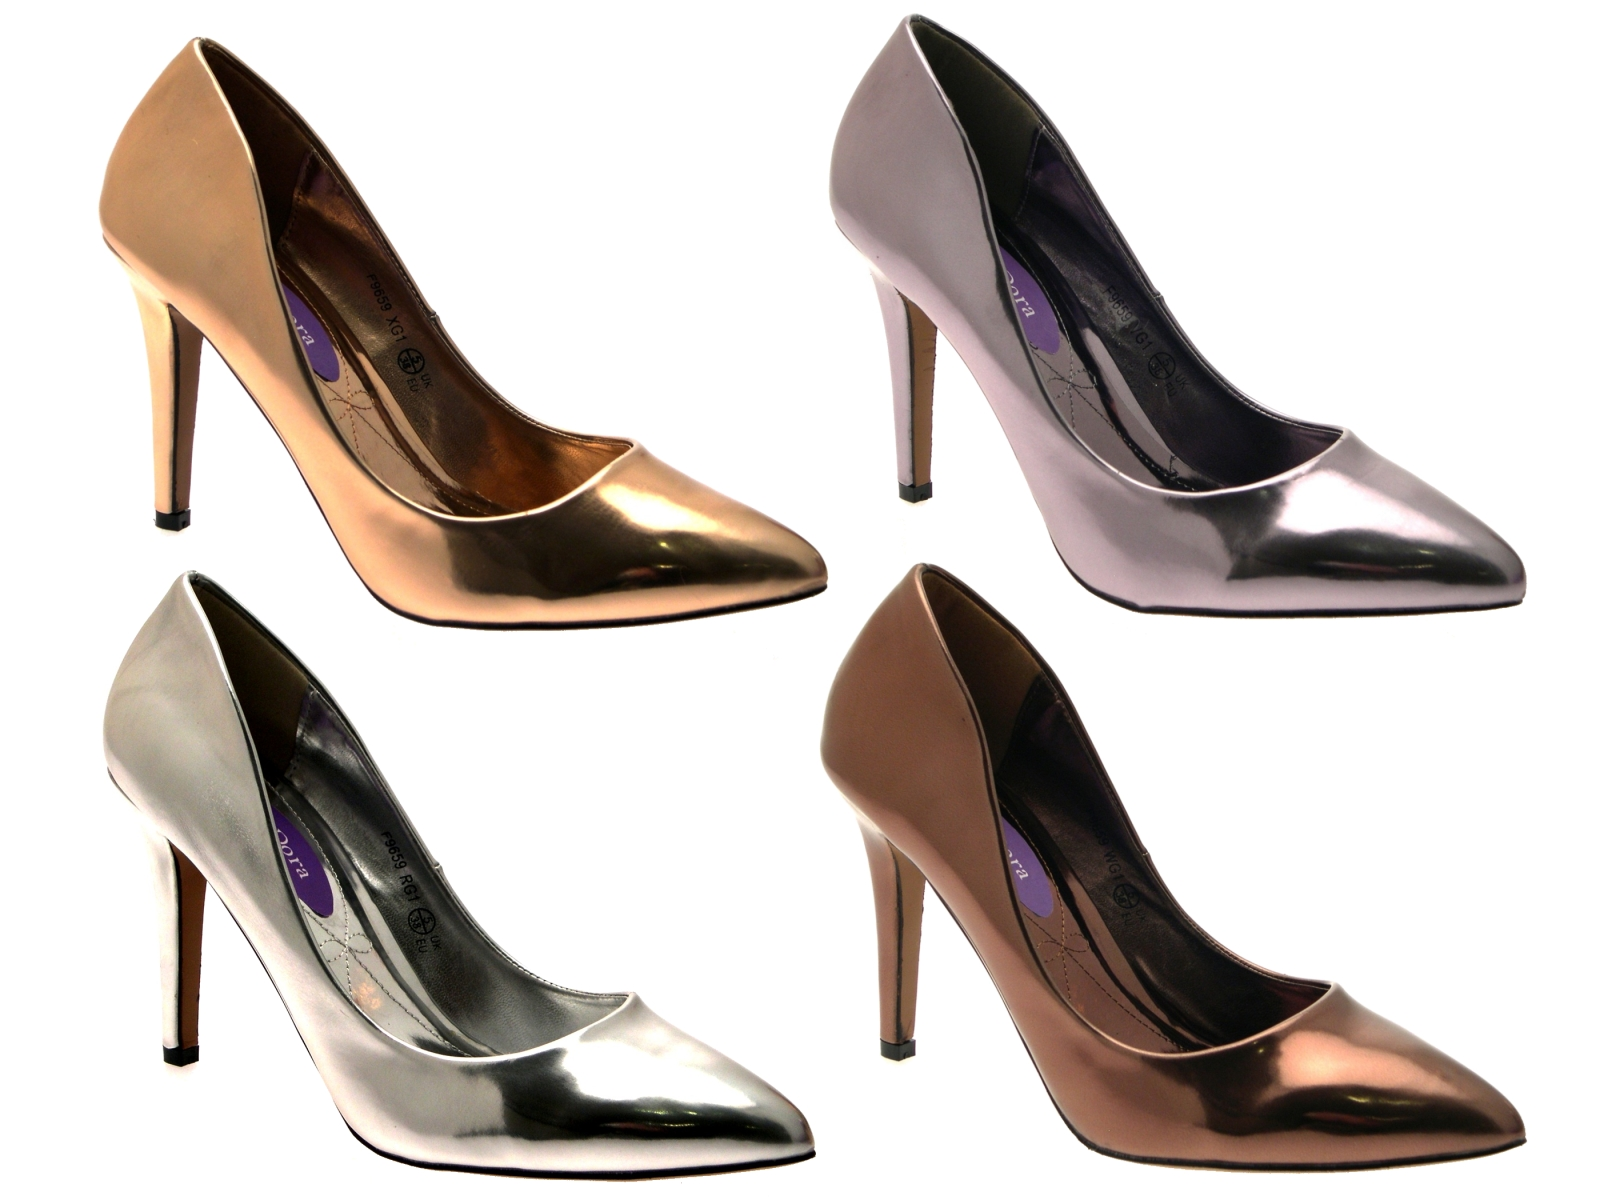 Womens-Metallic-Pointed-Toe-Court-Stiletto-High-Heels-Ladies-Work-Office-Shoes thumbnail 19